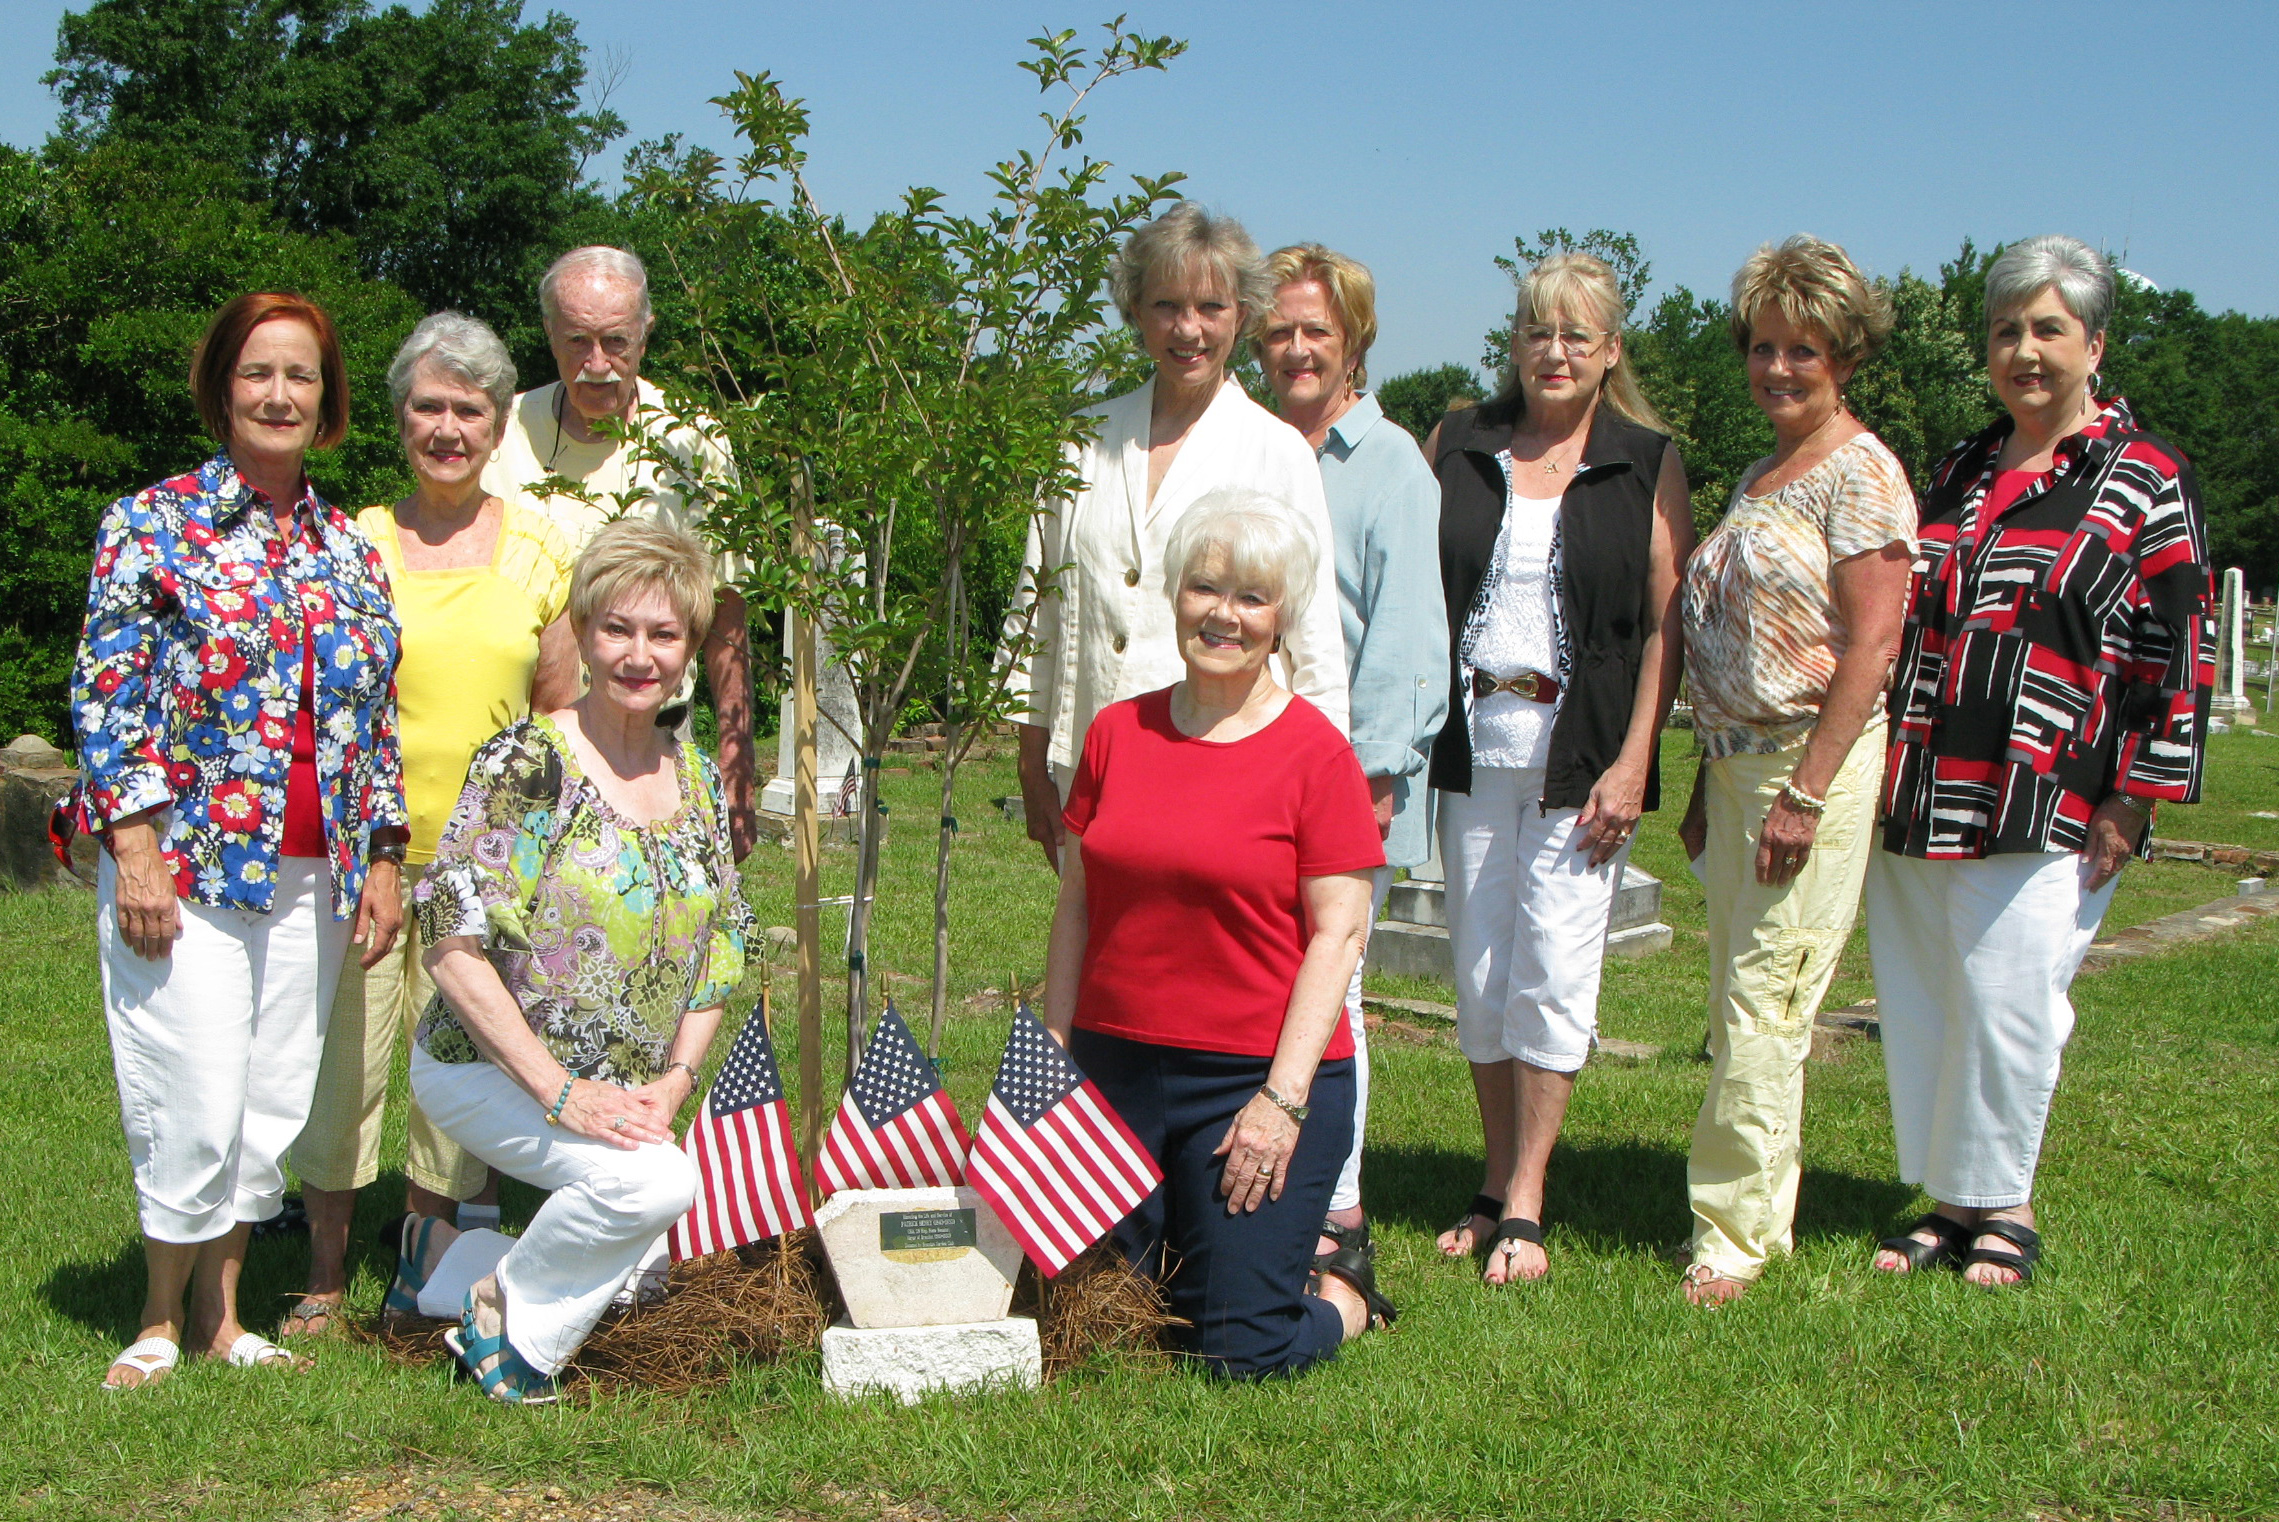 BRANDON GARDEN CLUB PLANTSMEMORIALTREE   Brandon Garden Club (BGC), The Garden Clubs of Mississippi, Inc., planted atreeand placed a plaque in Old Brandon Cemetery honoring the life, work, and service of Major Patrick Henry. Major Henry served as mayor of Brandon from 1916 until his death in 1930 at the age of 87. Thememorialservice was conducted by Karen Crowe, BGCMemorialTreeChairman. Pictured at the dedication, front: Charla Jordan, BGC President, and Karen Crowe, BGC  Memorial    Tree  Chairman. Standing (l to r): Lynn Mahoney, Carol Atkinson, Wayne Atkinson, Joan Alliston, Rosemary Morrow, Lynda Farmer, Marion McKee, and Jane Huddleston.